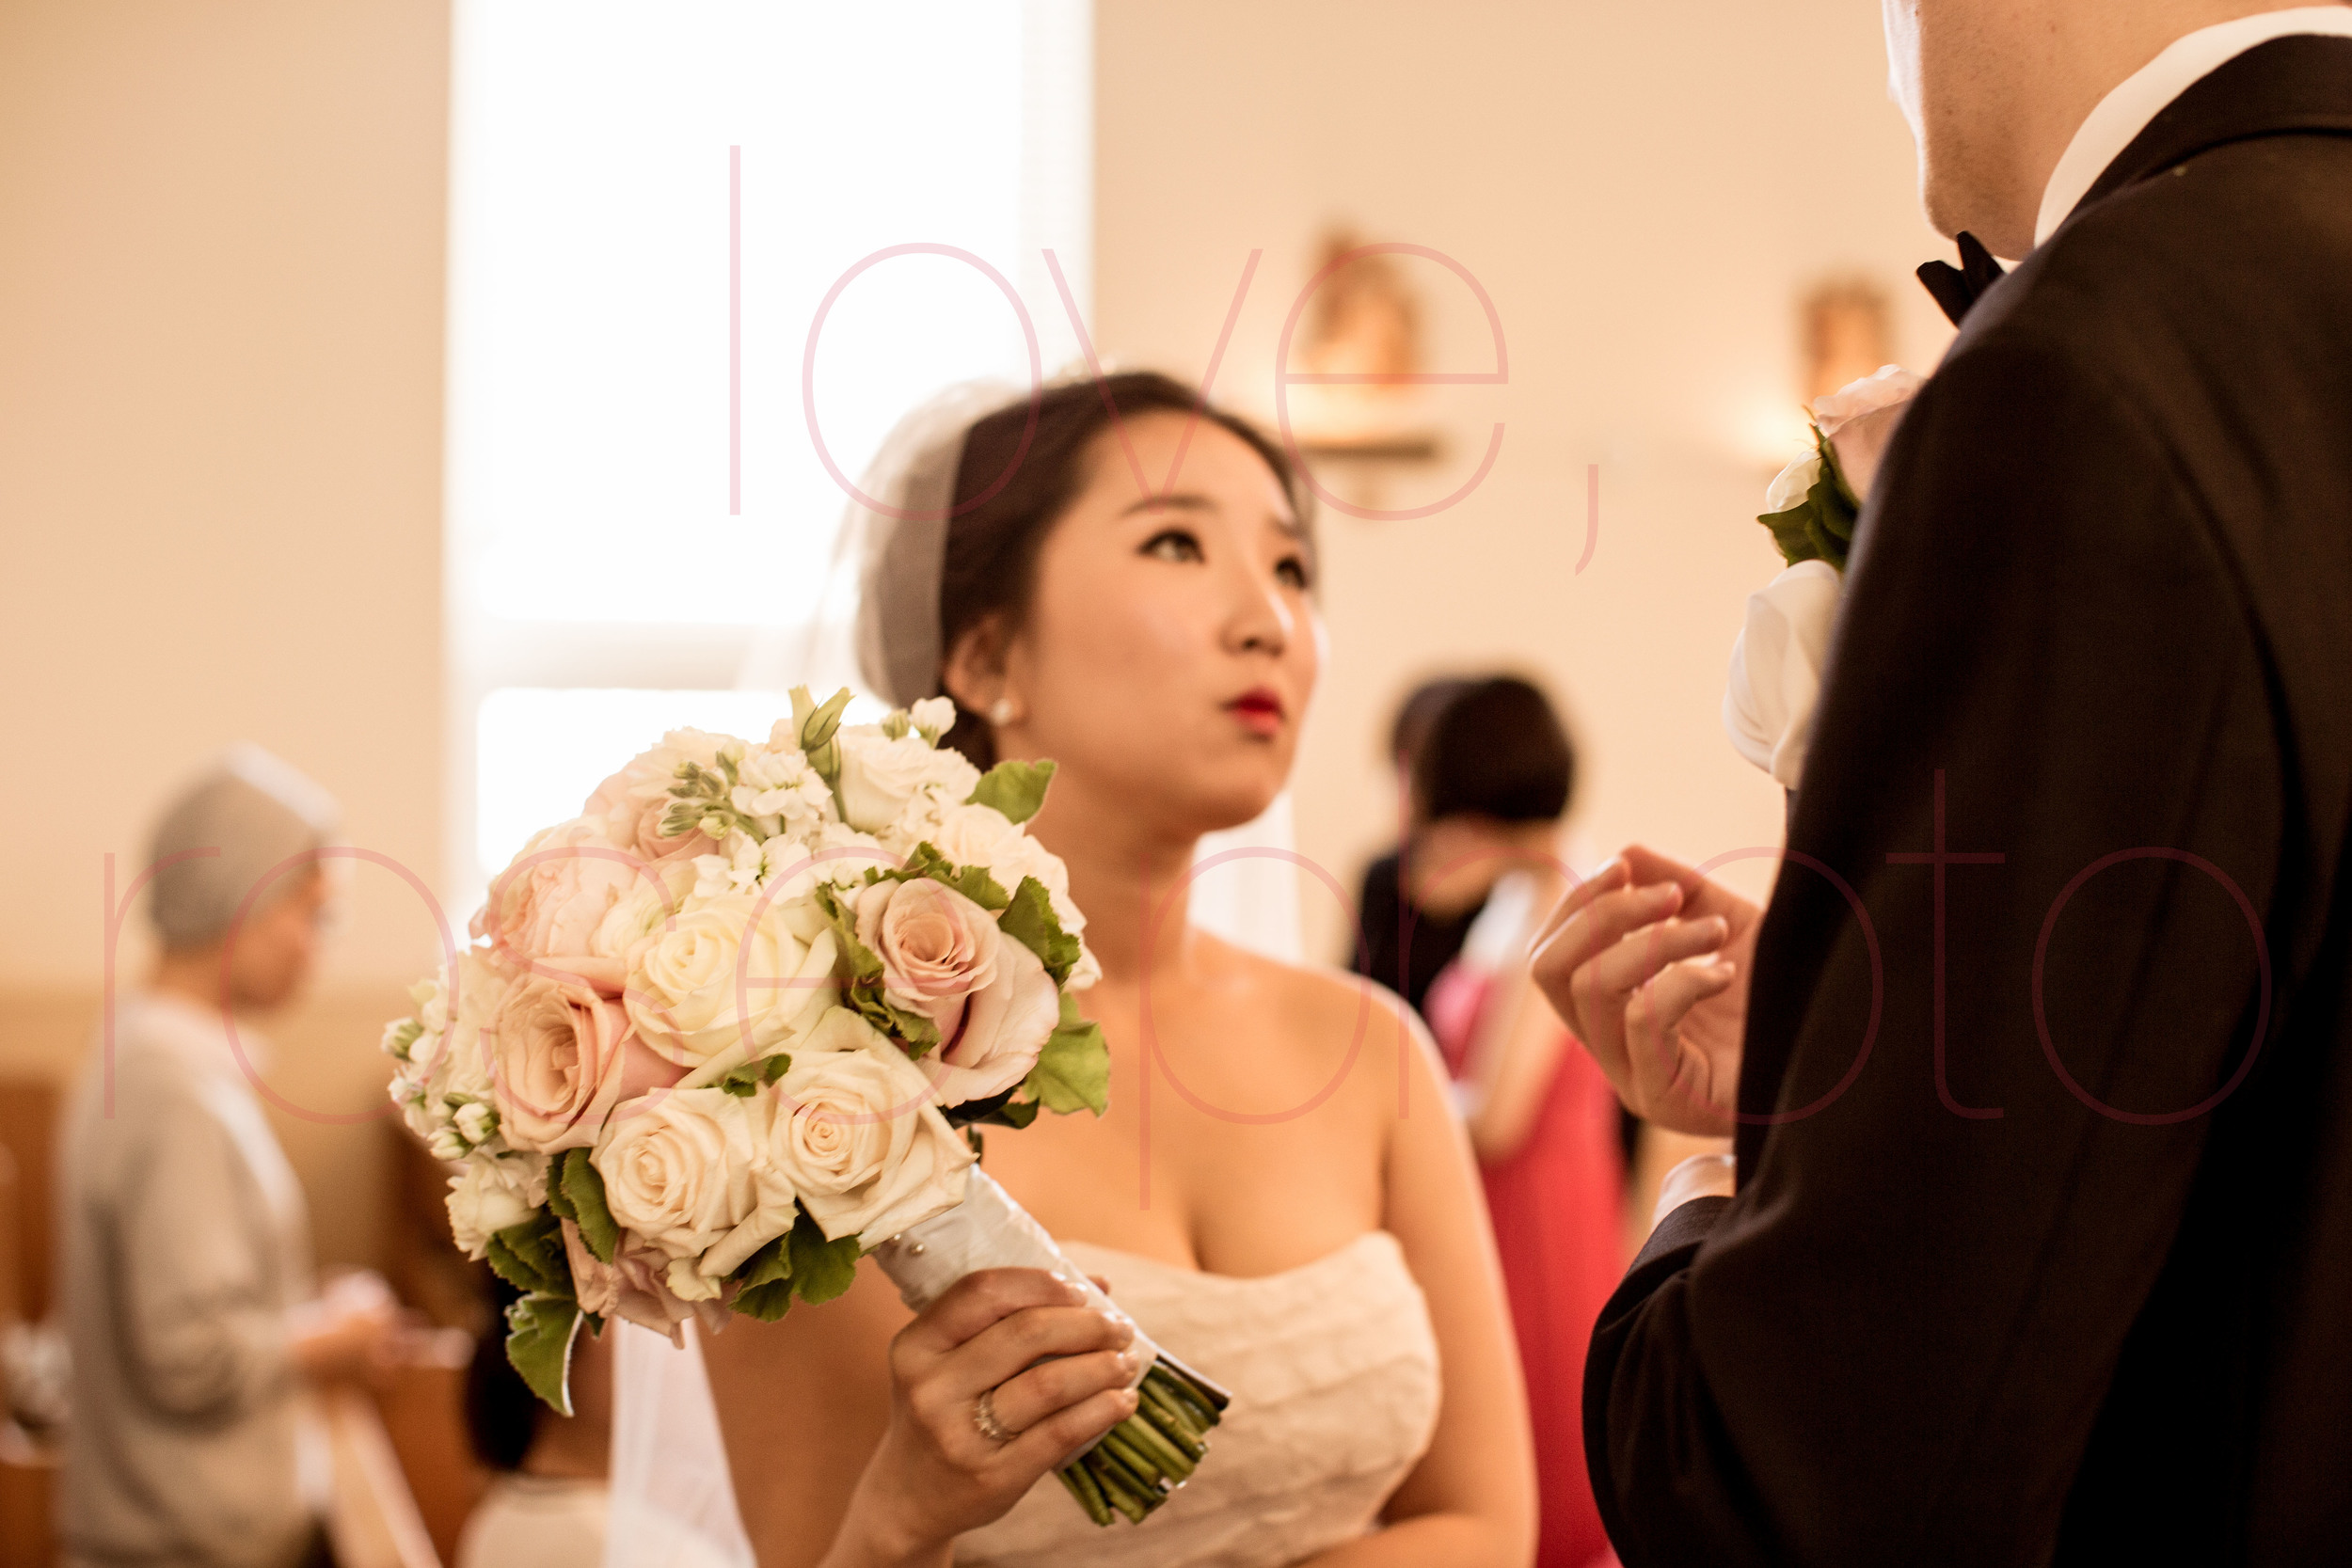 Hanvit + Lukus Lincoln Park Salvatore's Korean German Wedding portrait lifestyle photographer-009.jpg